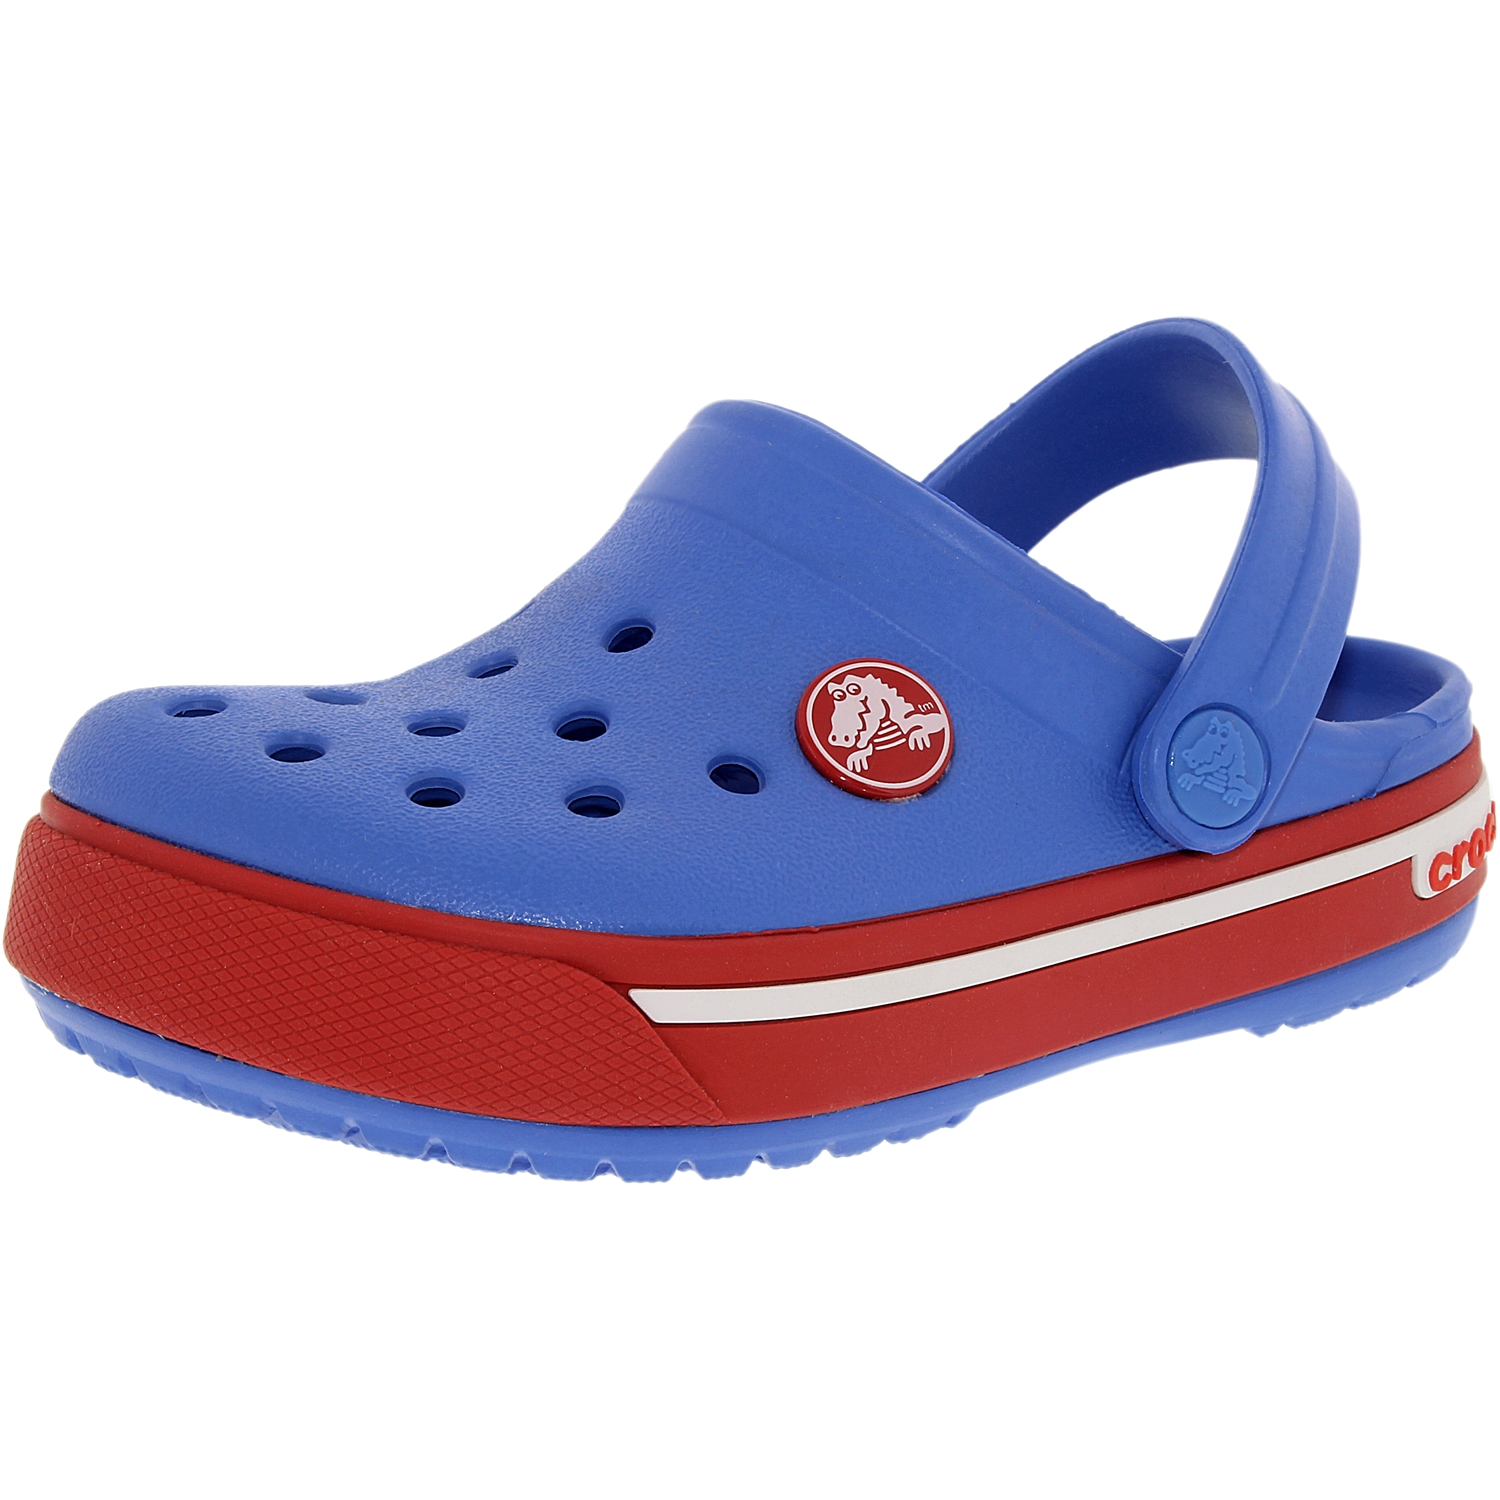 Crocs Boy's Kids Crocband II.5 Varsity Blue Red Ankle-High Rubber Sandal 4M by Crocs